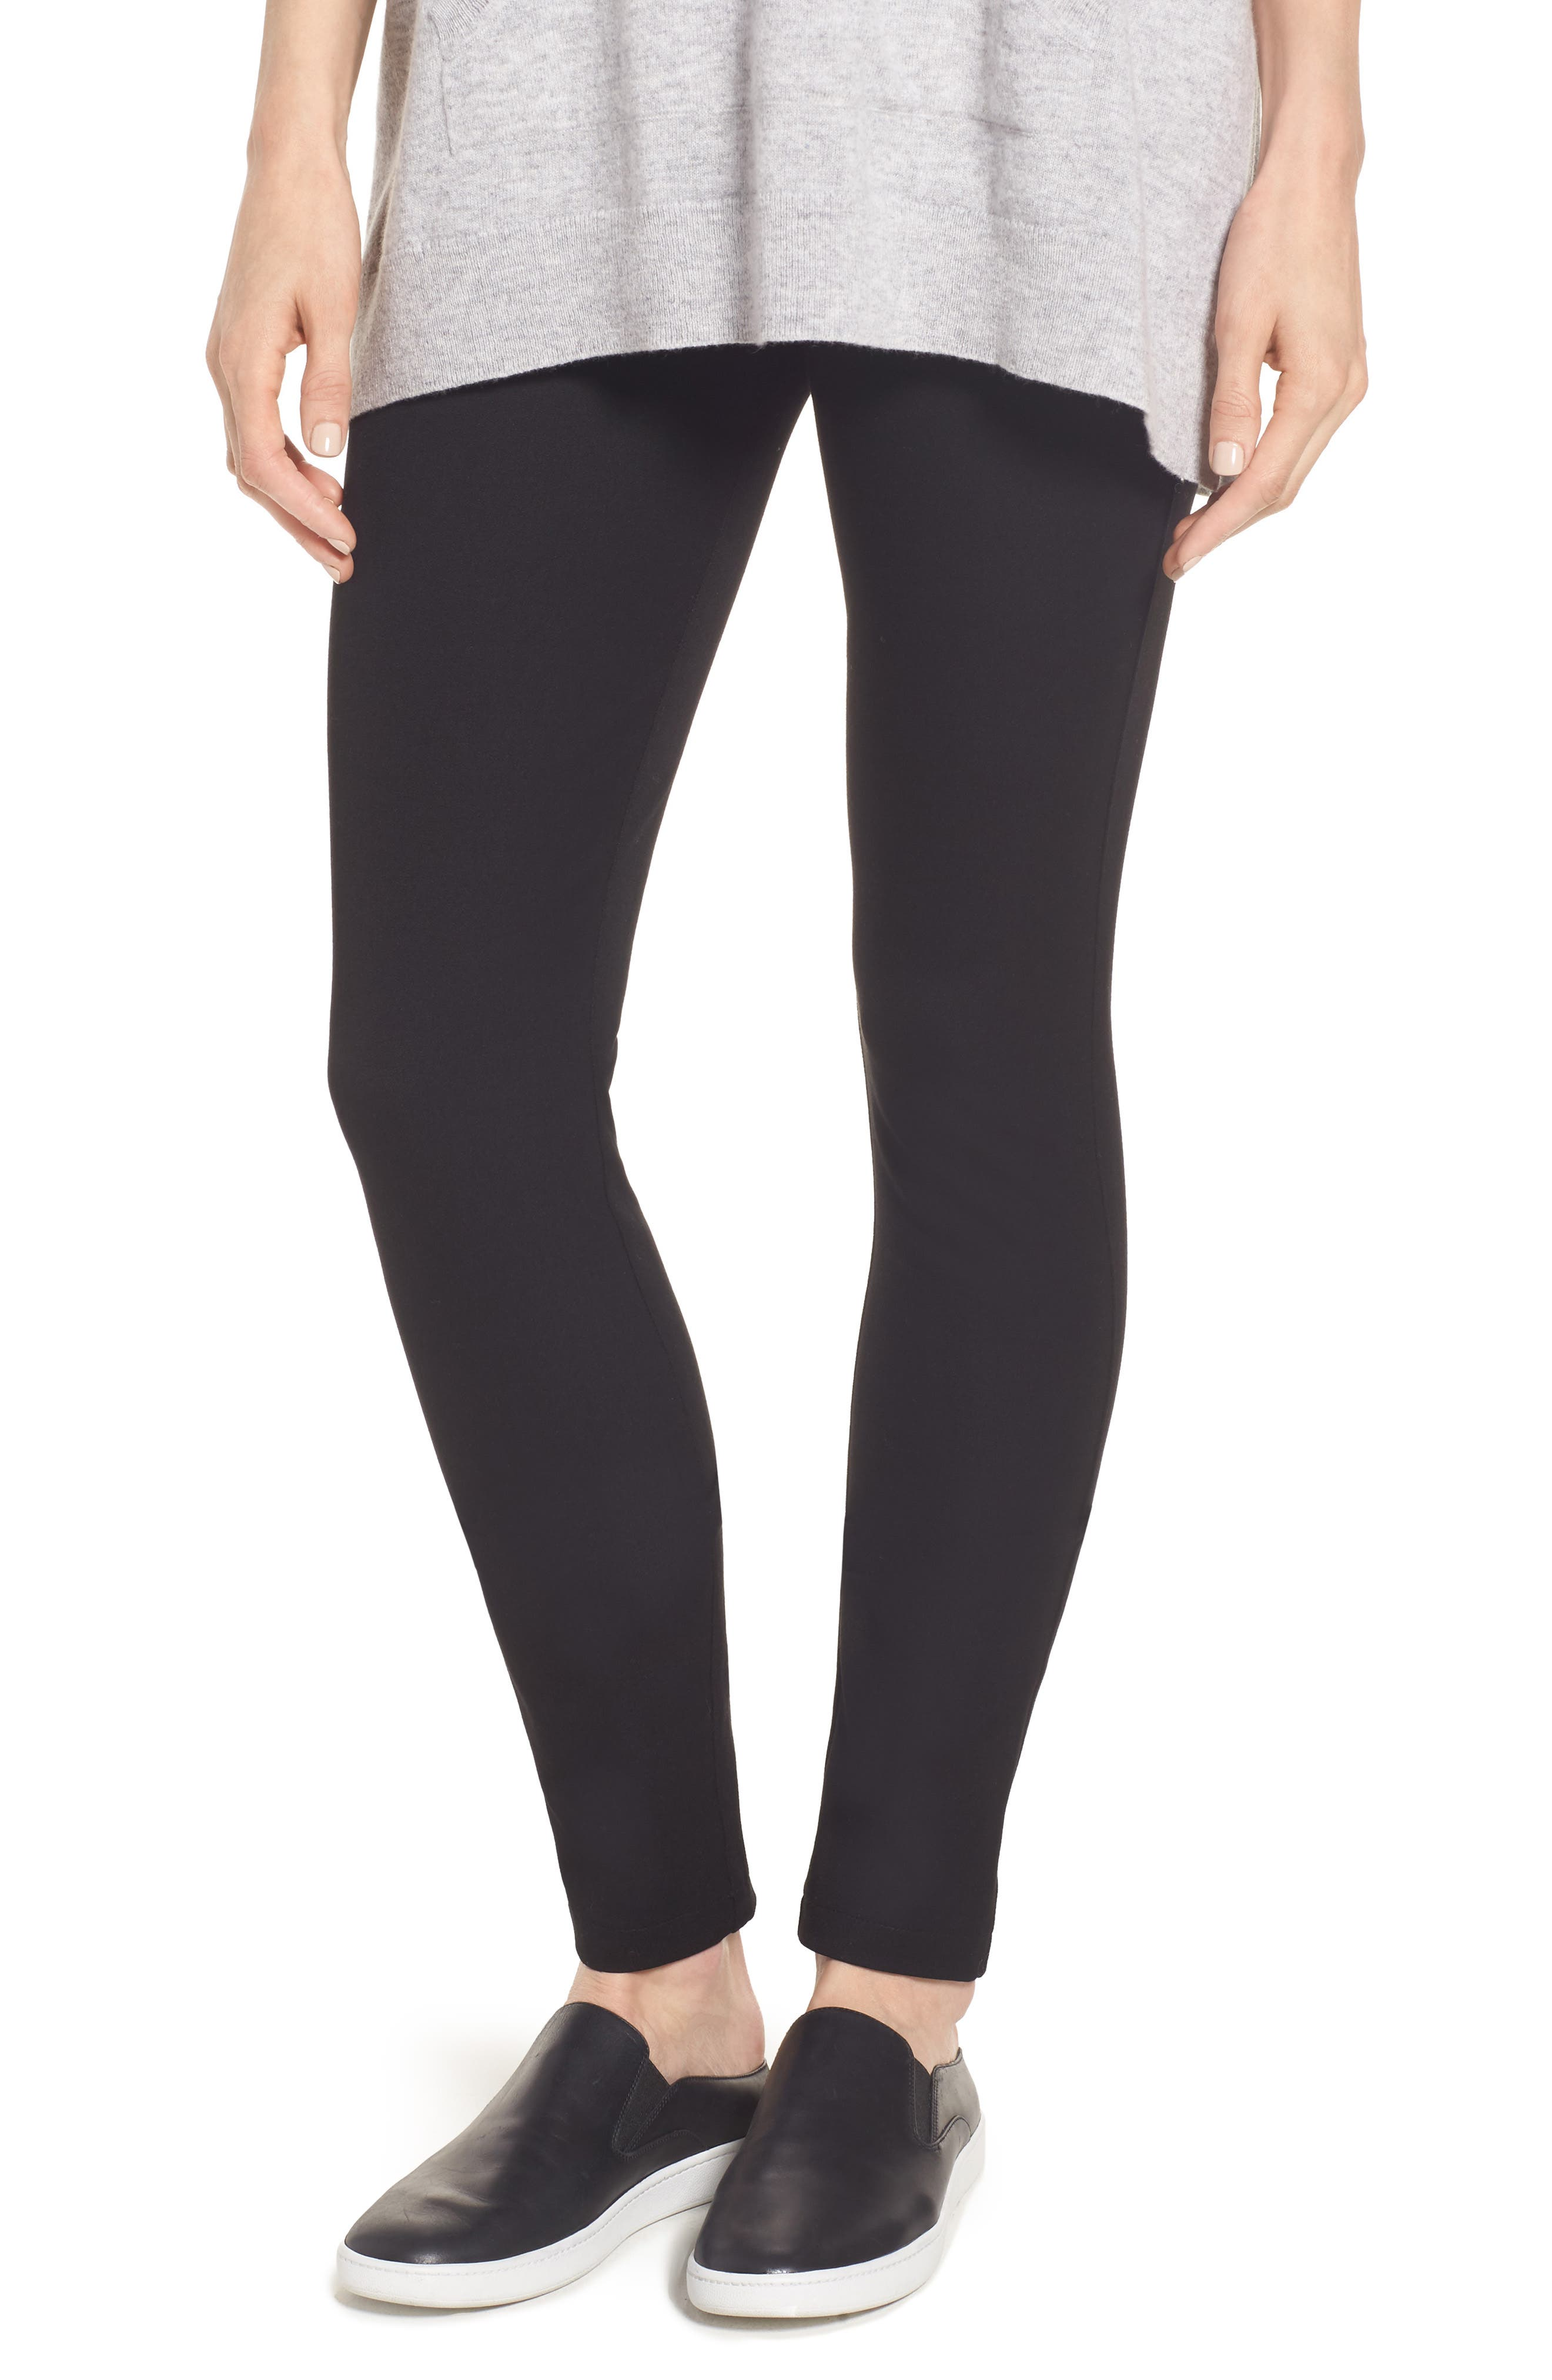 Nordstrom Signature Stretch Pants